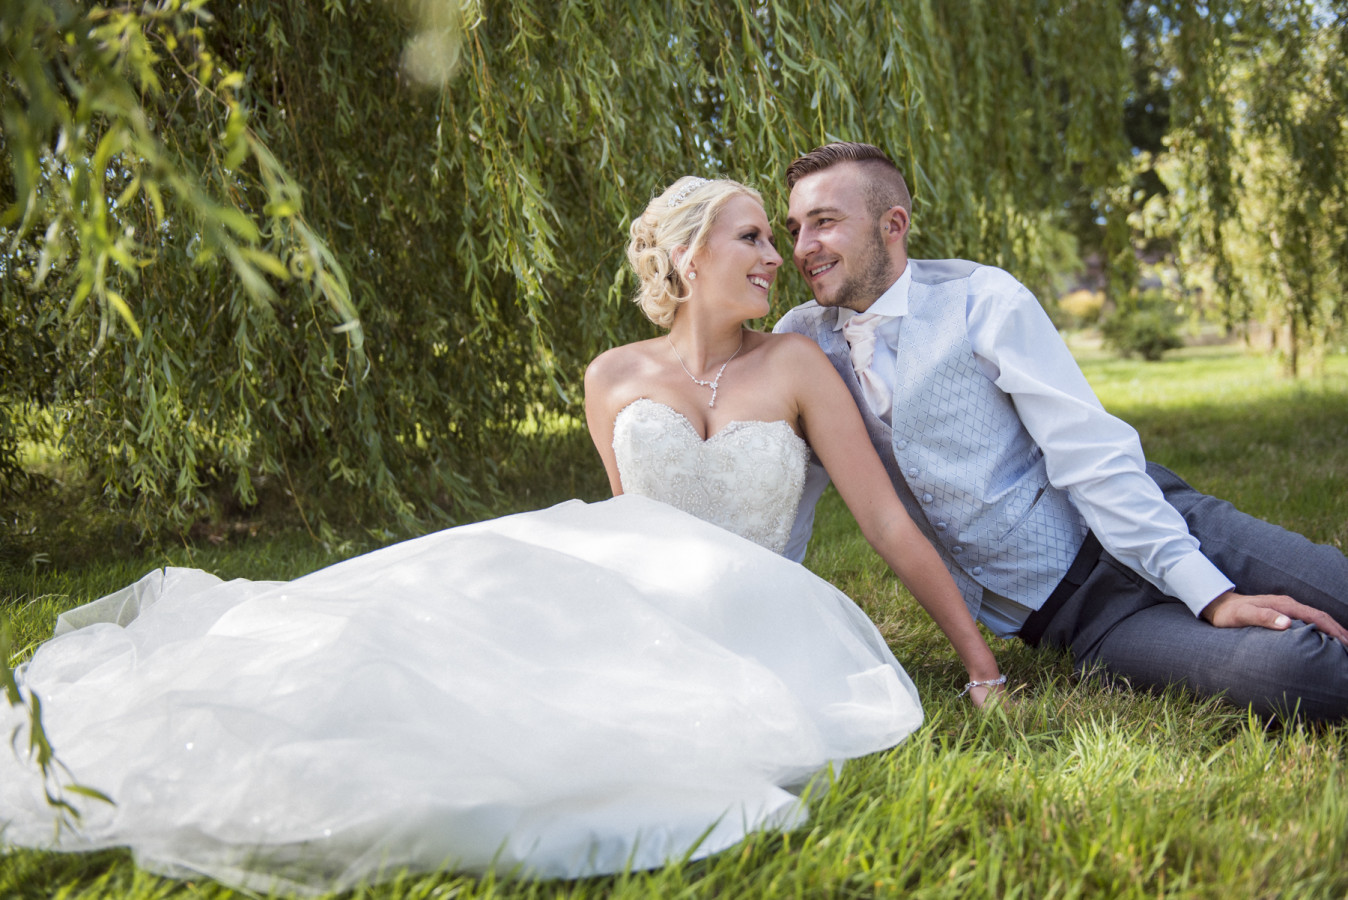 London Wedding Photography - natural and timeless wedding photography in Preston, Lancashire UK and Europe